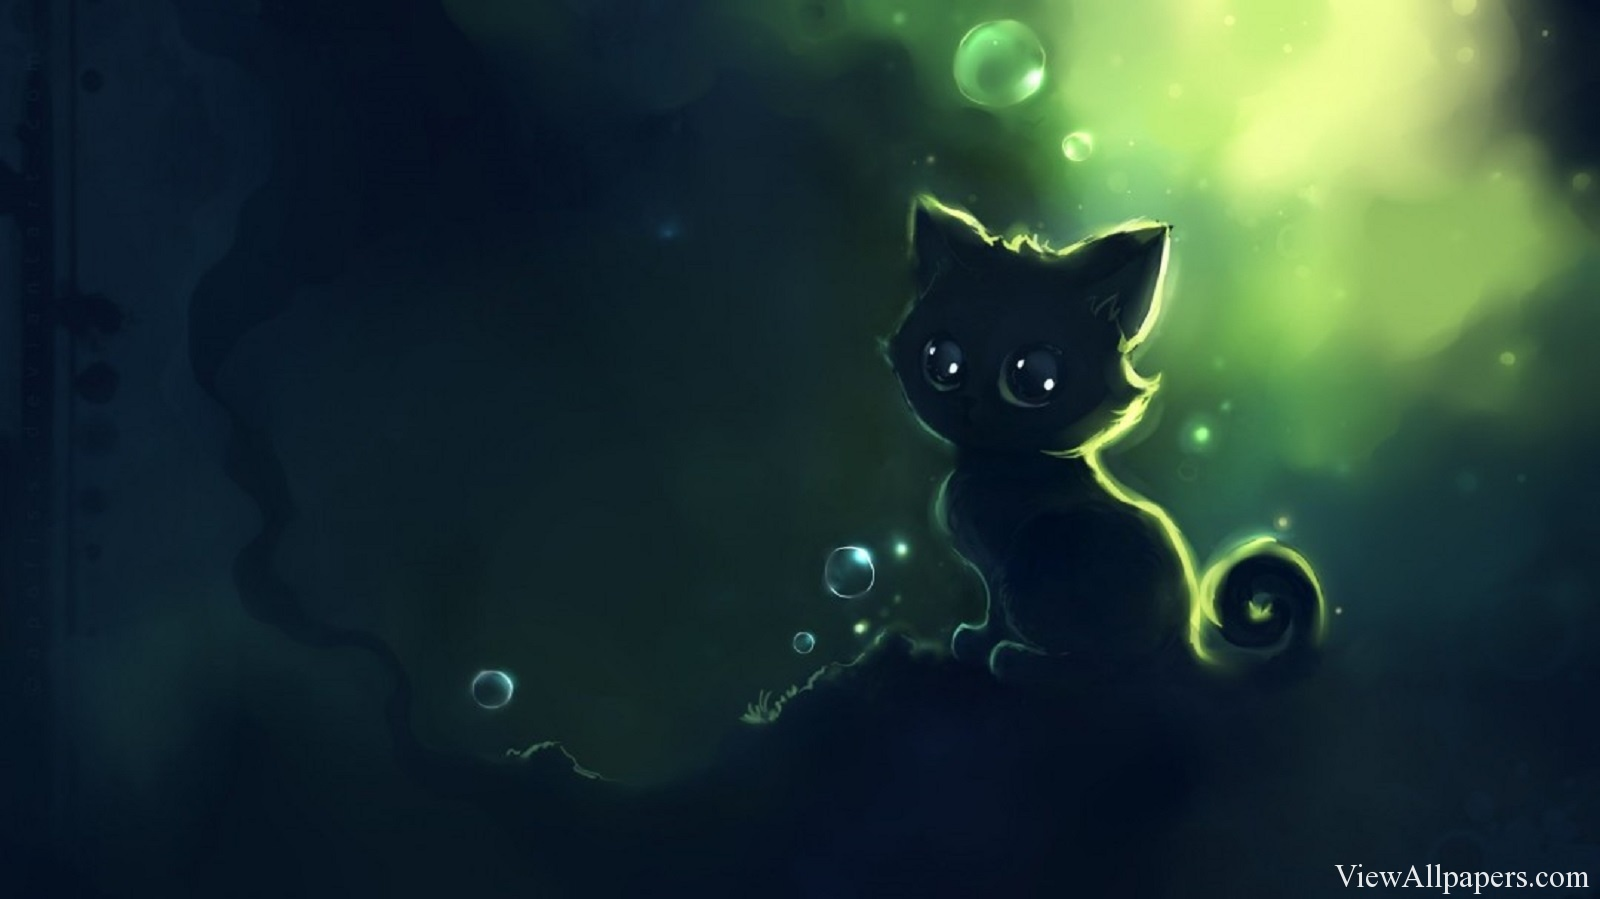 Anime Alone Cat Wallpaper Anime HD Wallpapers 1600x899